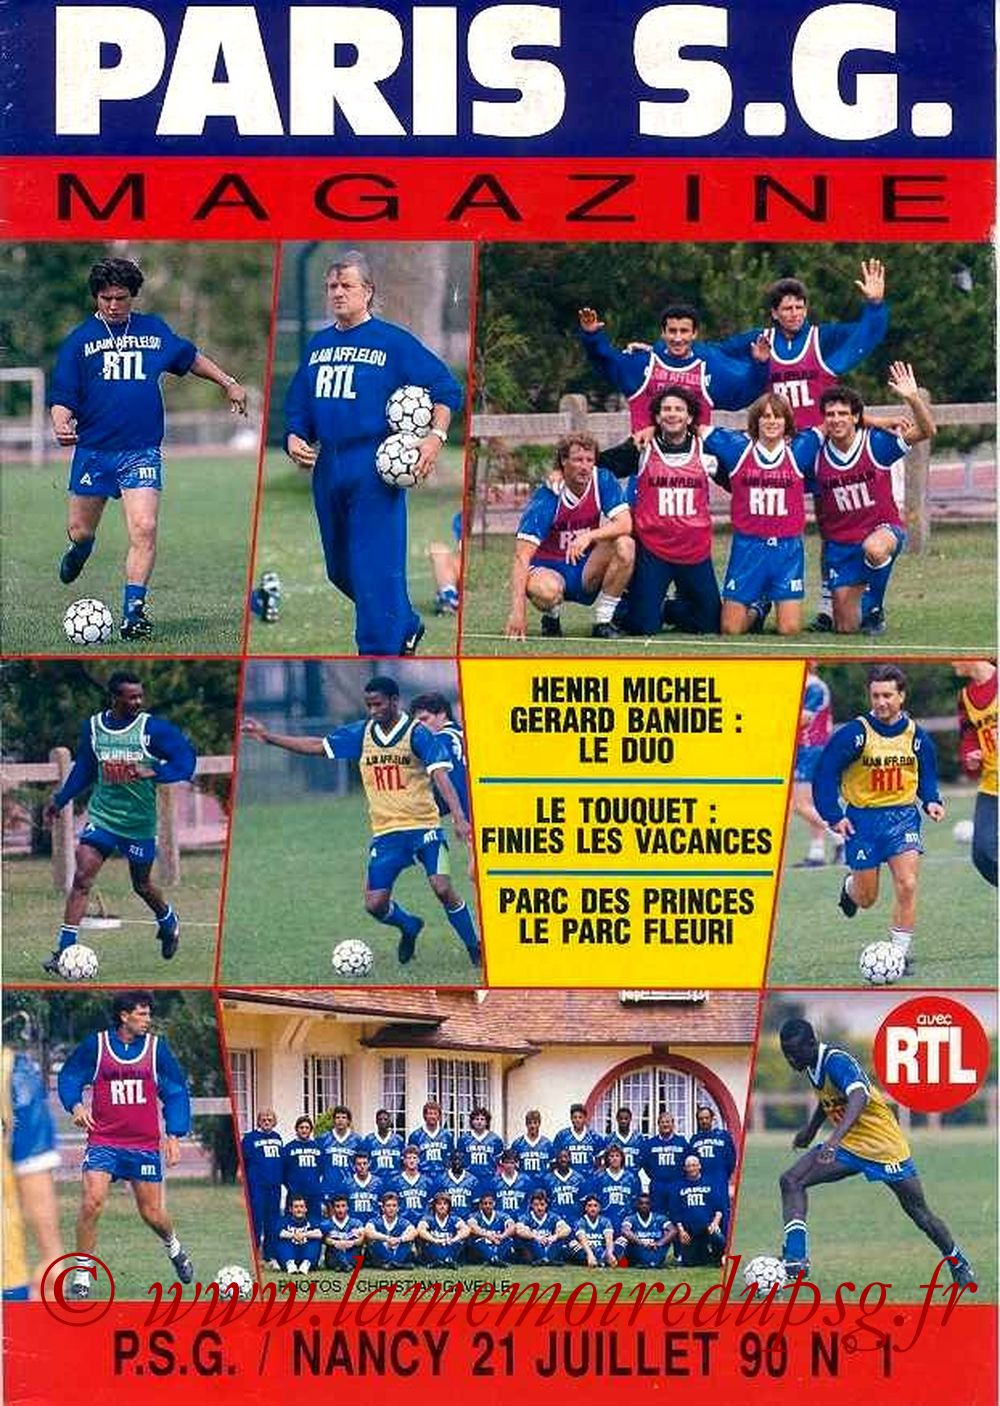 1990-07-21  PSG-Nancy (1ère D1, Paris SG Magazine N°1)